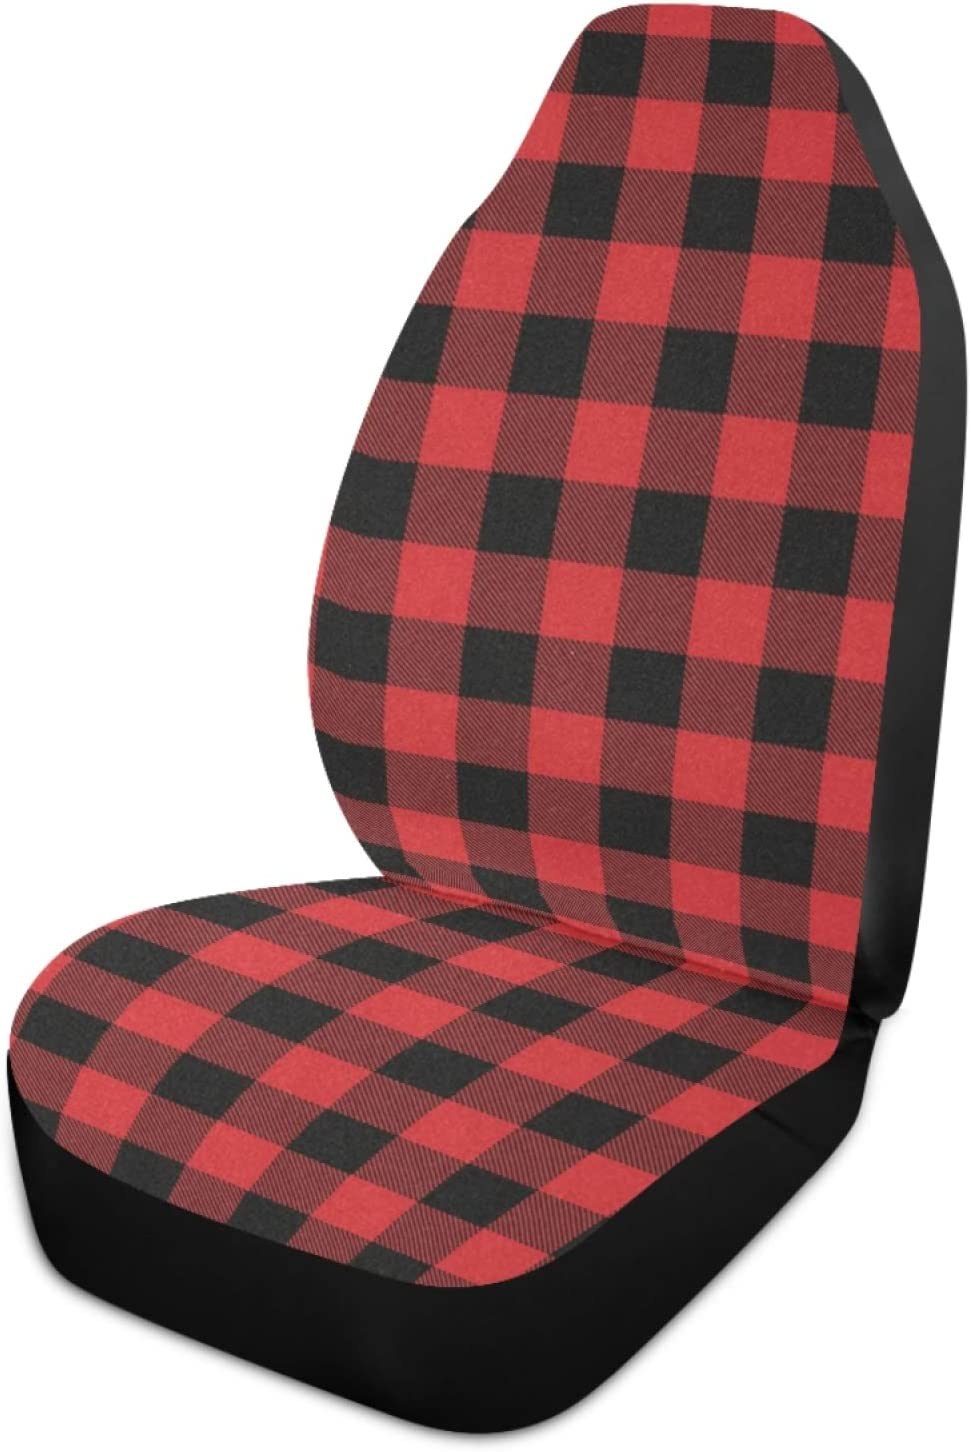 Qilmy Red Buffalo Plaid Car Seat Covers Universal Non-Slip Car Seat Cover Breathable Stain Resistant Seats Covers for Cars